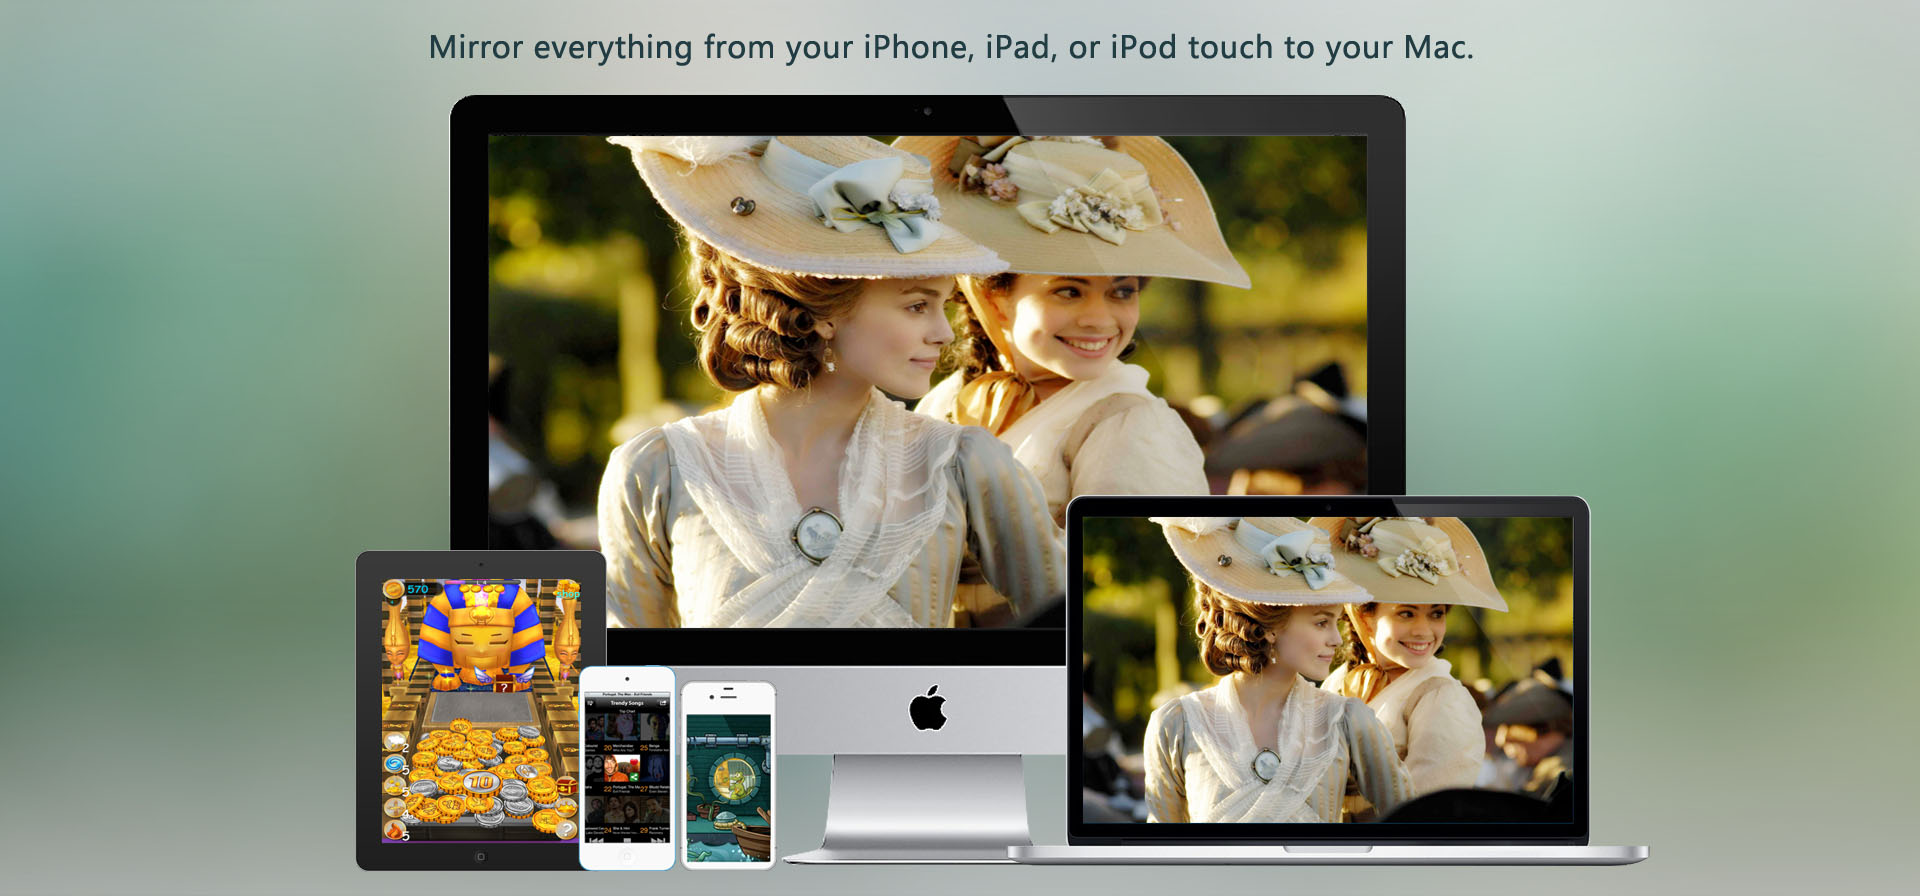 airplay receiver for mac, x-mirage, mirror, airplay, stream photo